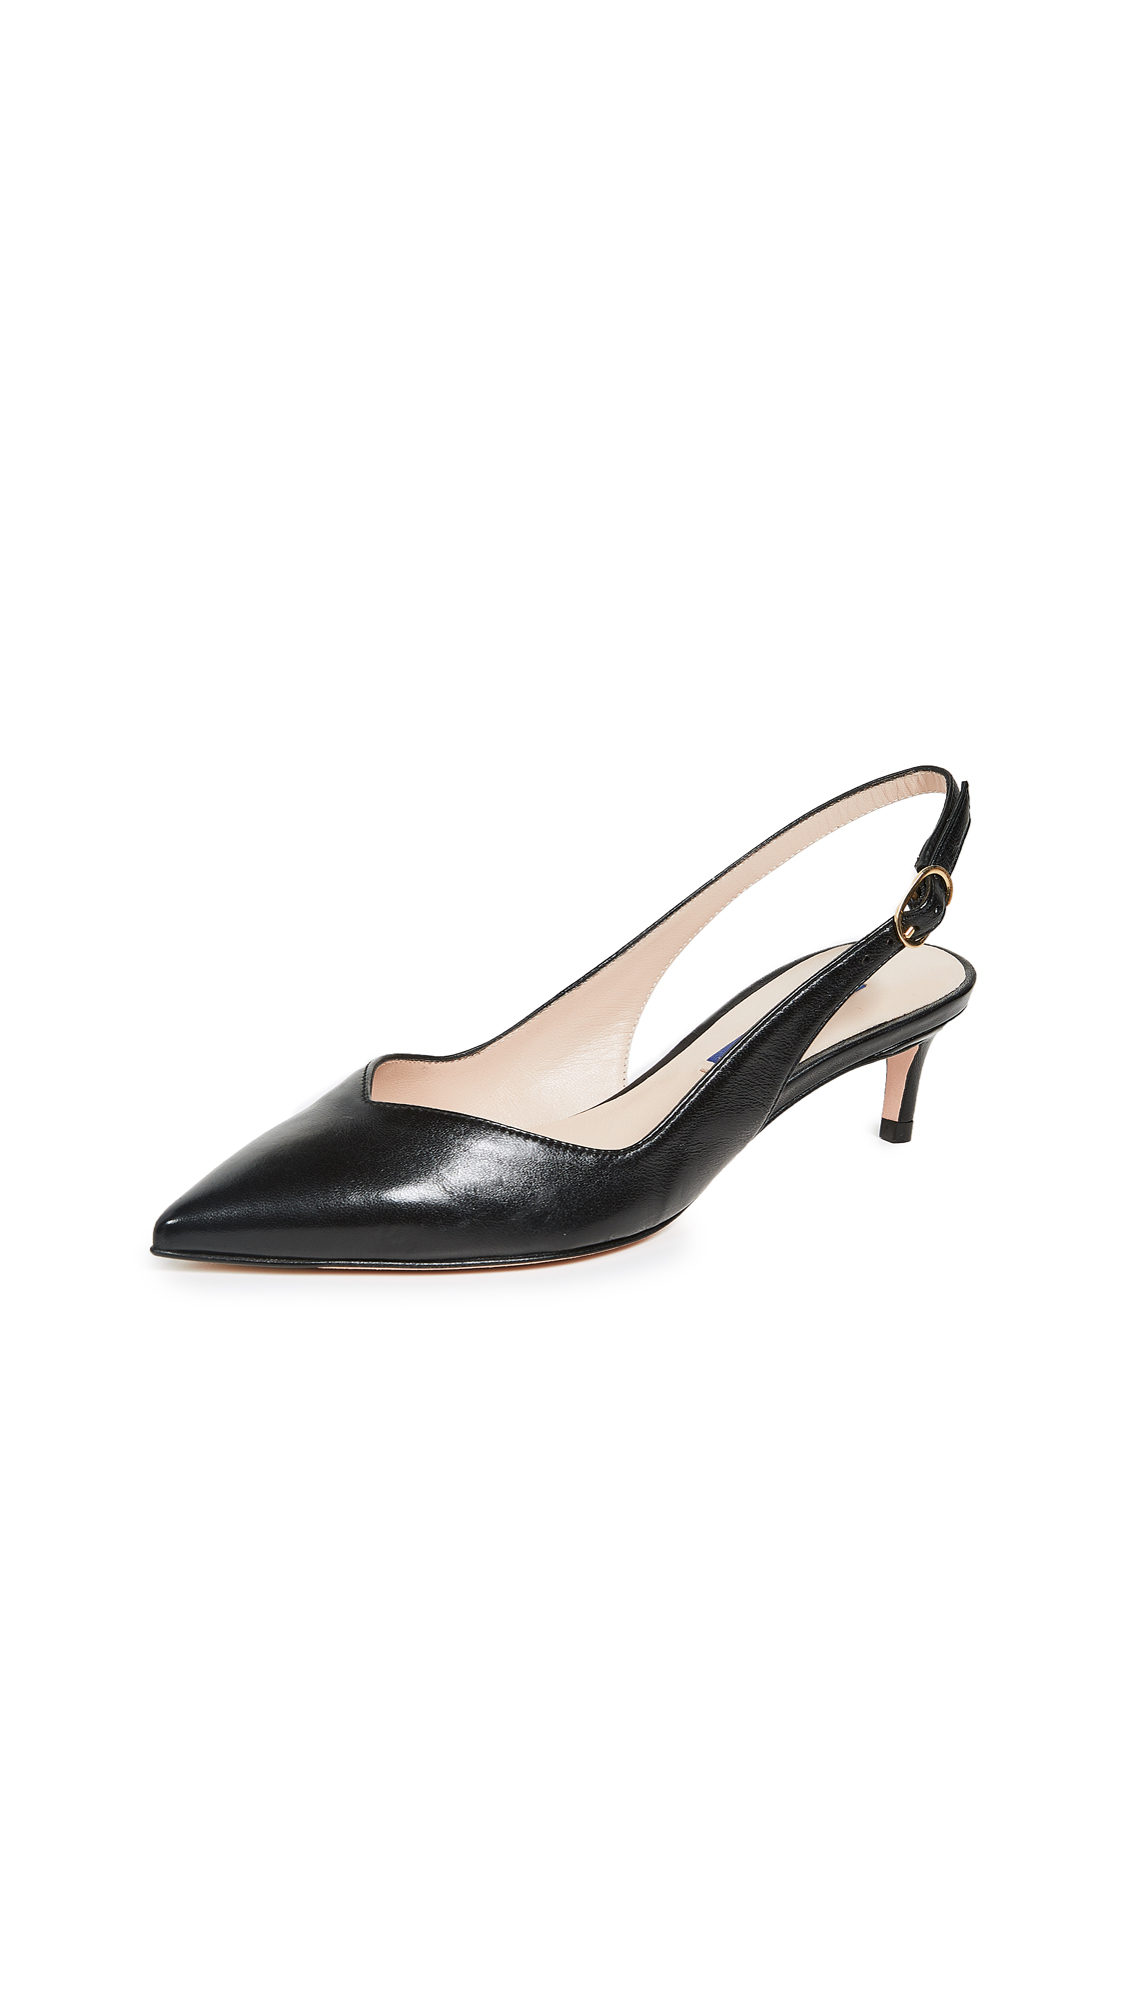 Stuart Weitzman Edith Slingback Pumps - Black